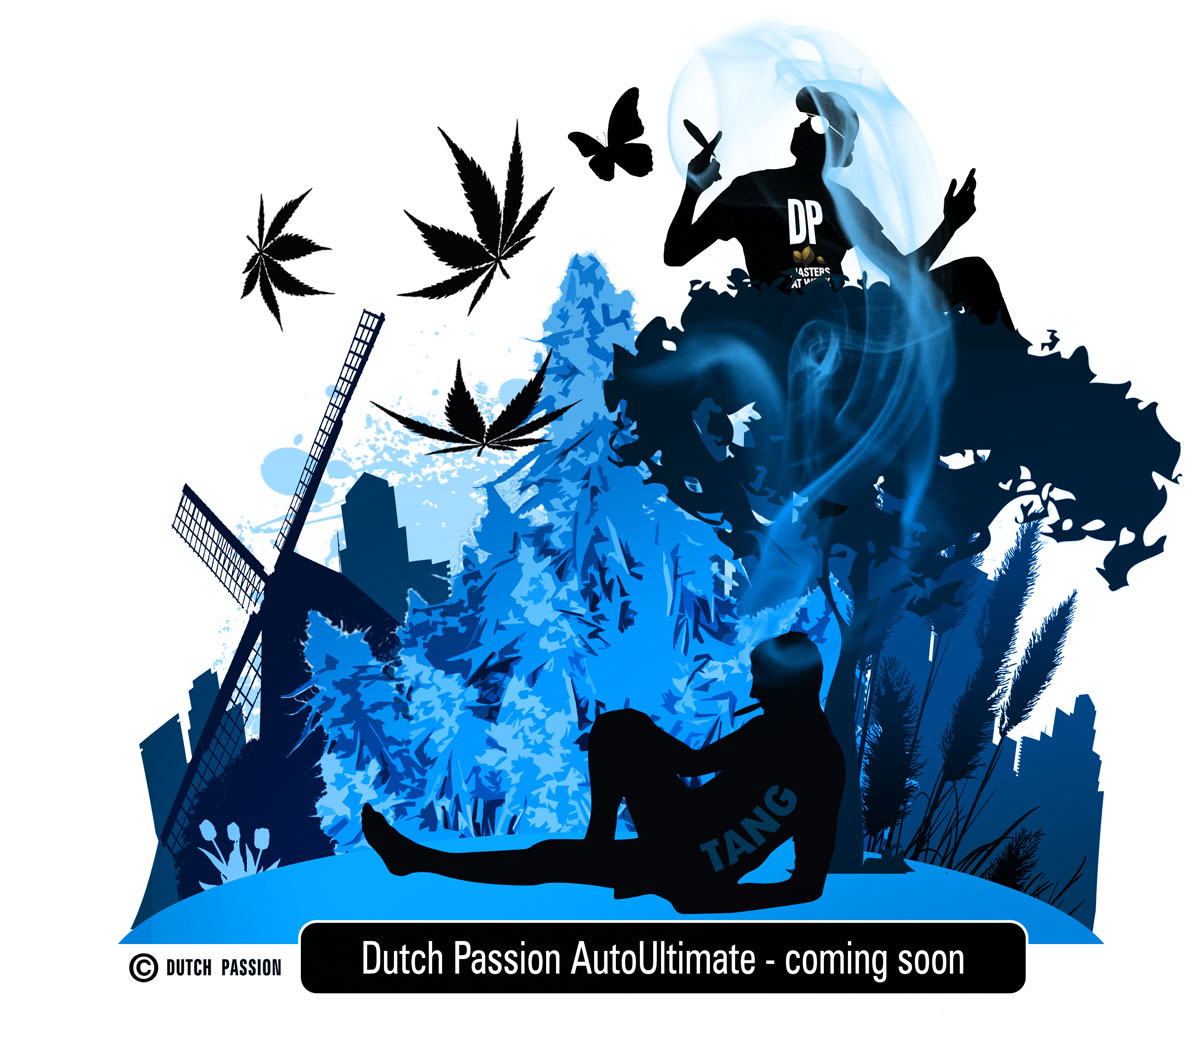 auto ultimate new from ducth passion